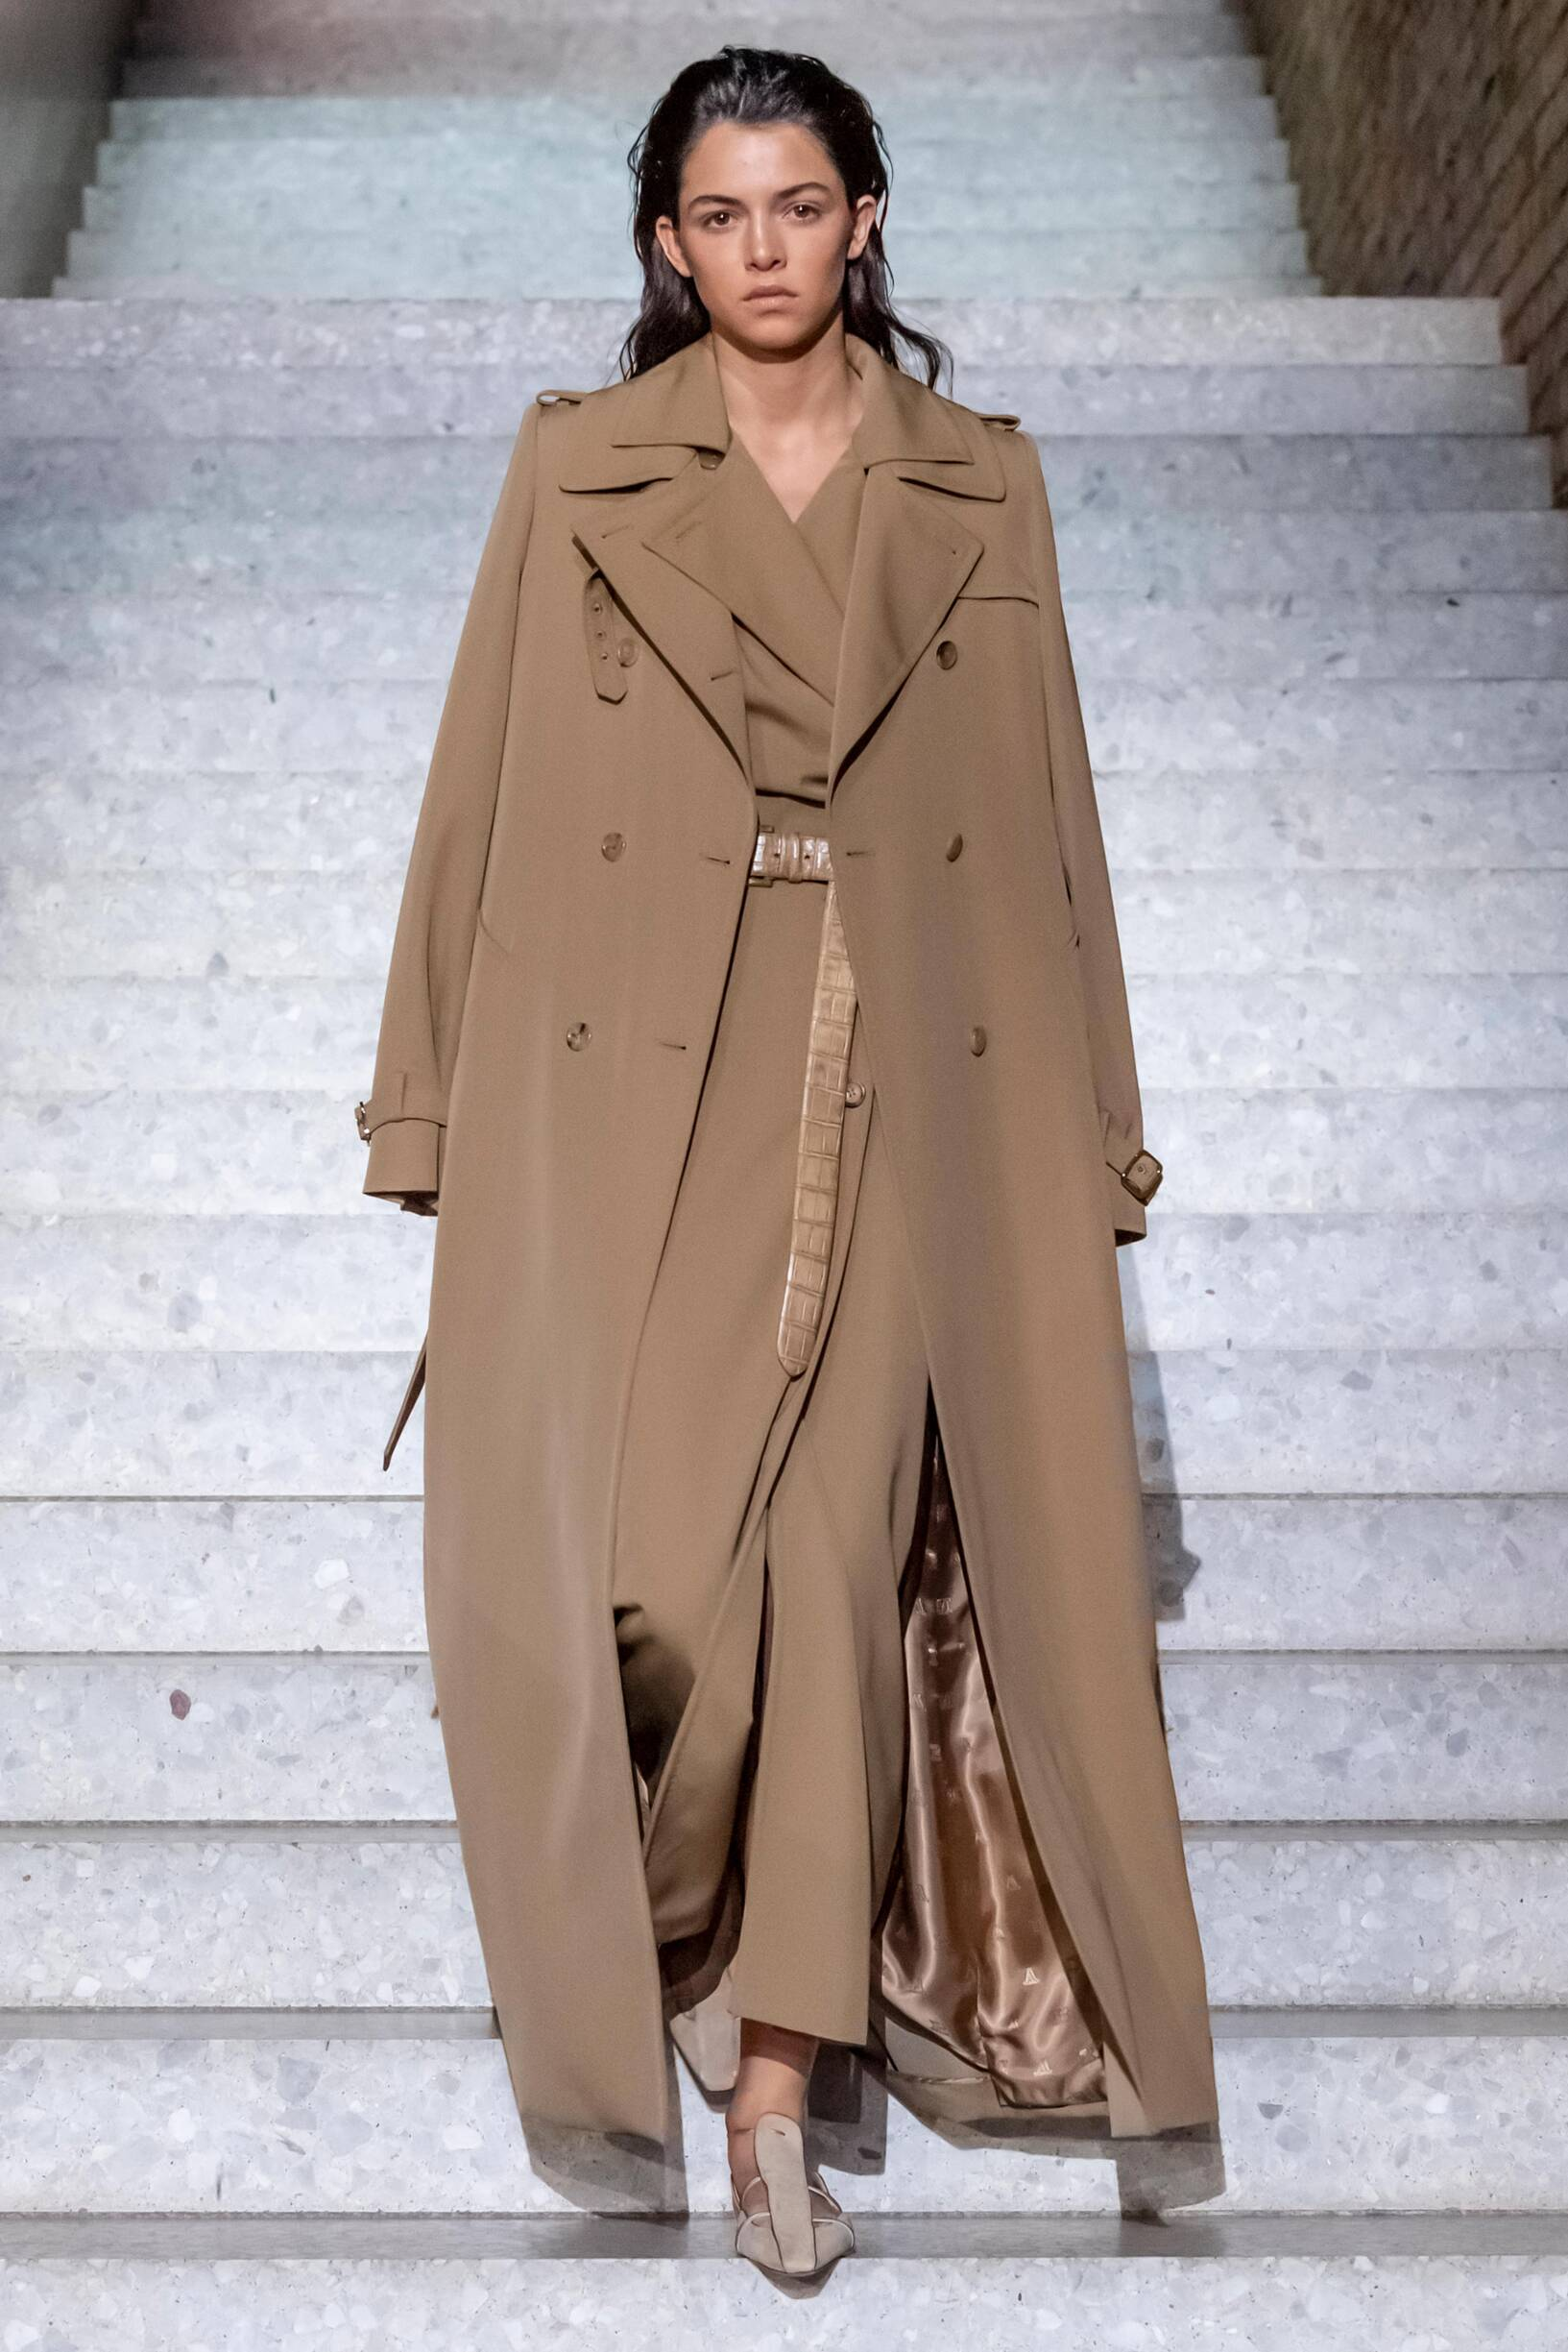 Max Mara Resort 2020 Collection Look 22 Berlin